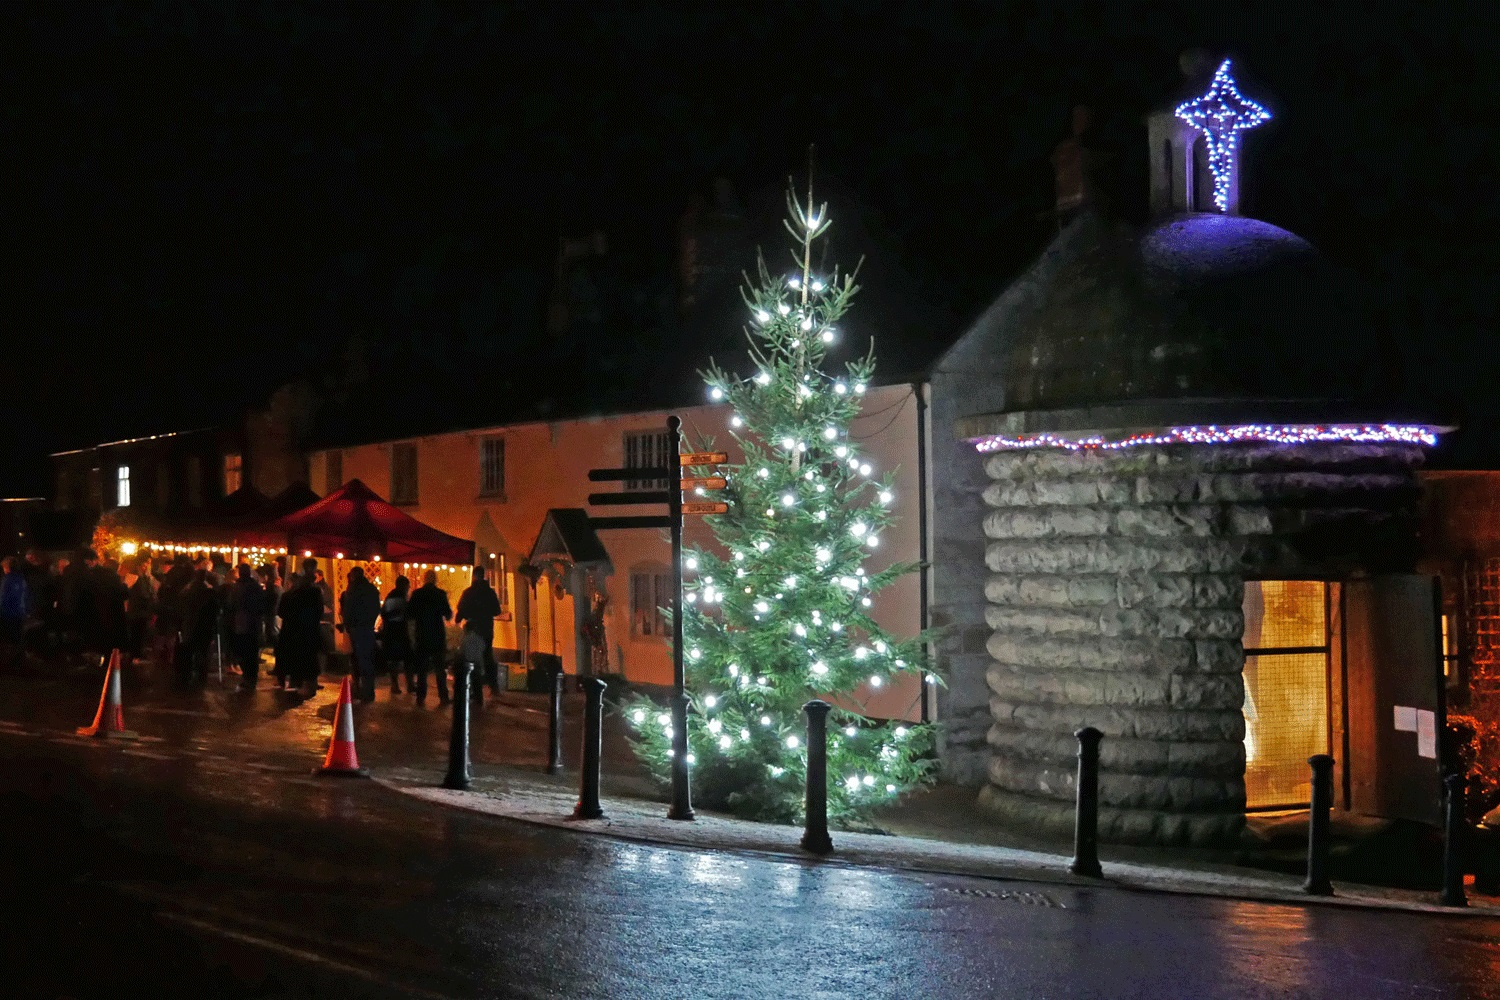 Alton Round House decorated for Christmas. Each year, a nativity scene is installed inside the lock-up. The Round House is used as the centre point for community carol singers, led by the local (Alton) Handbell Ringers